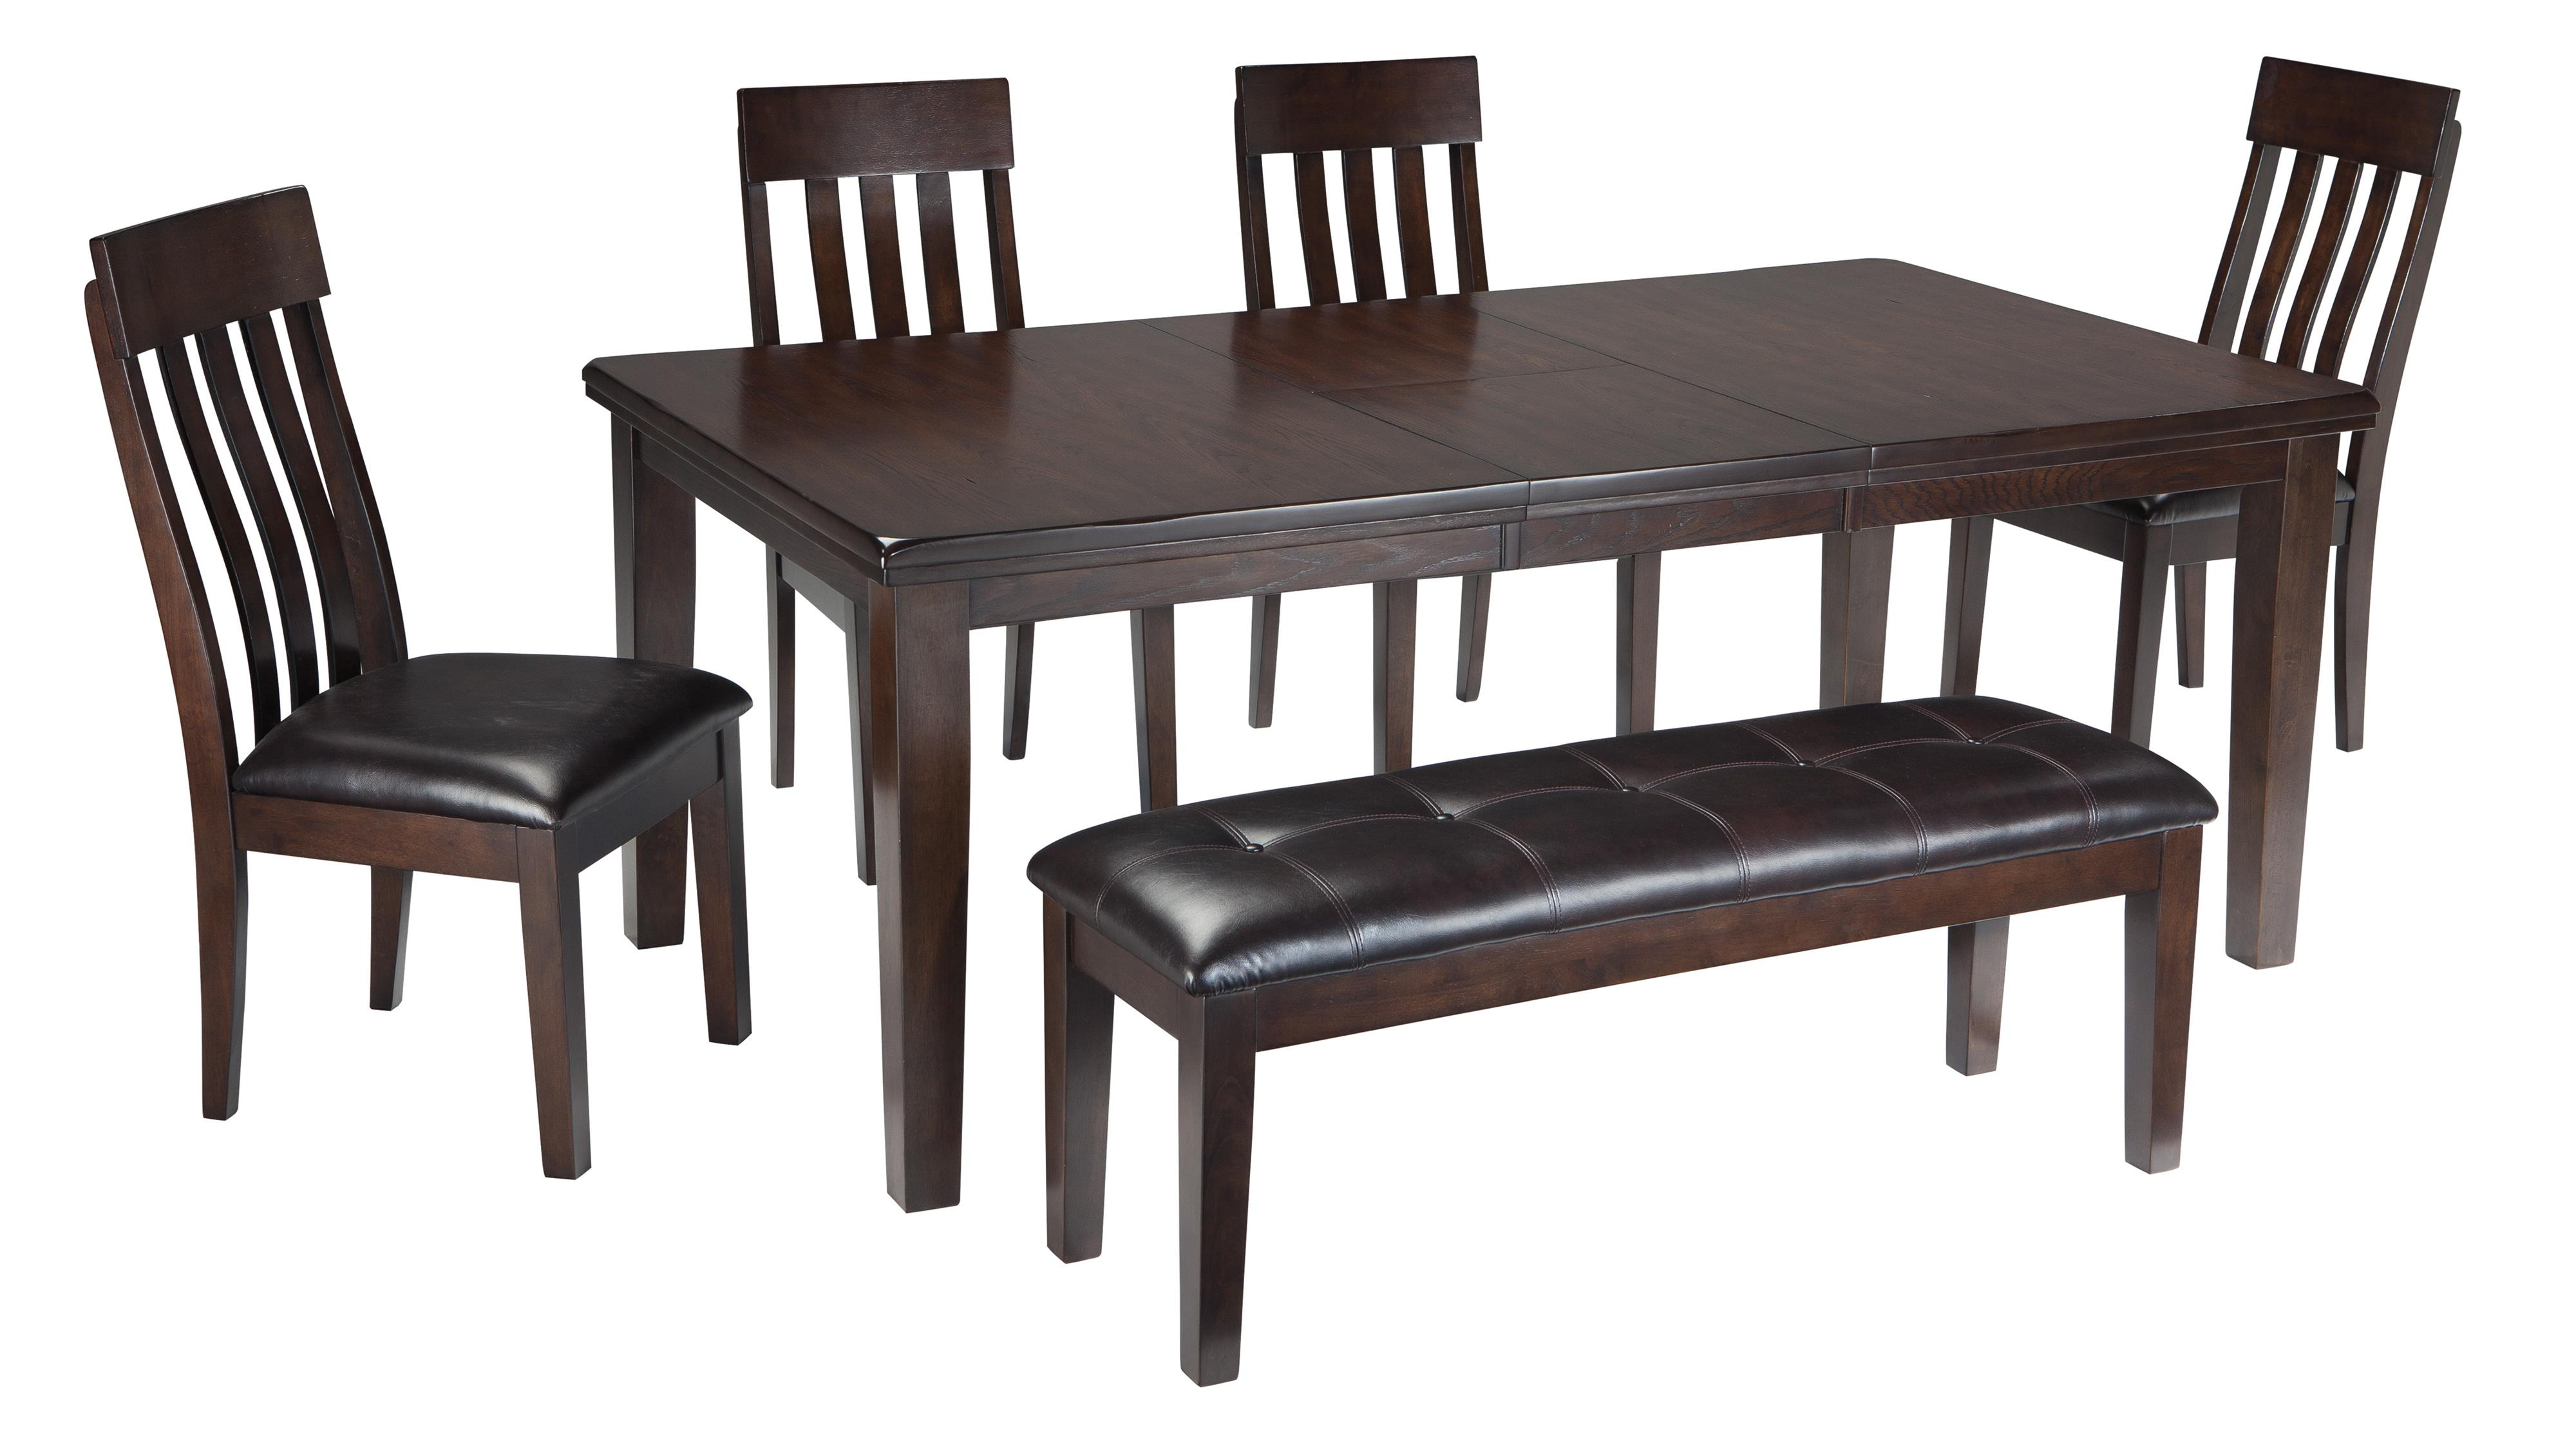 Signature Design By Ashley Haddigan 6 Piece Rectangular Dining Room Table W 4 Upholstered Dining Side Chairs And Upholstered Dining Bench Set Wayside Furniture Table Chair Set With Bench